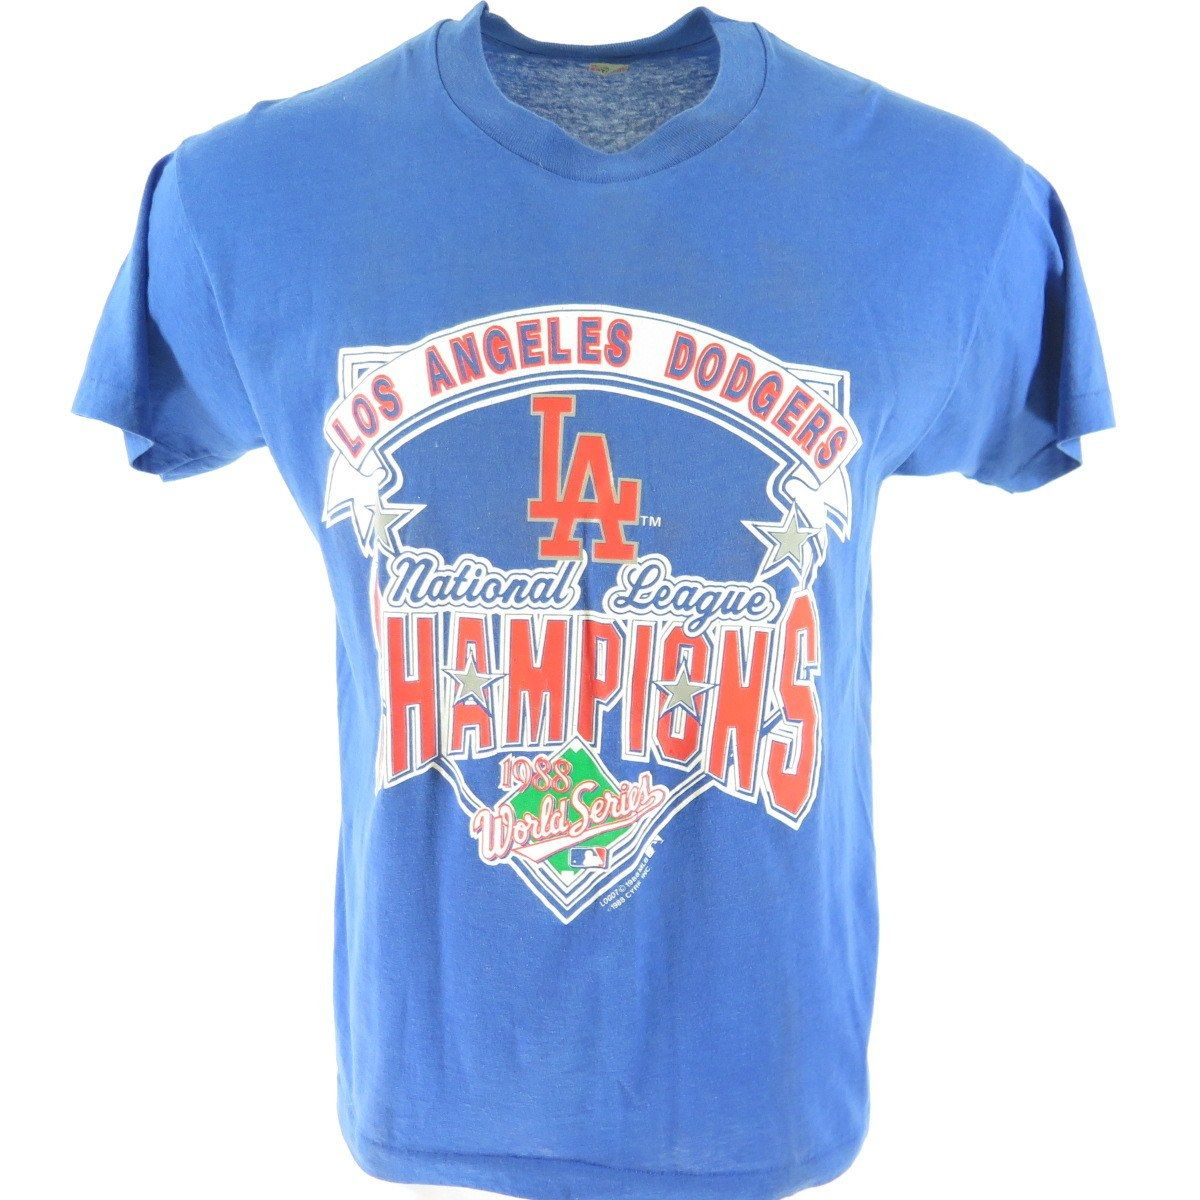 40c27869ce9 Celebrate the Los Angeles Dodgers with this authentic 1988 World Series  50 50 t-shirt!